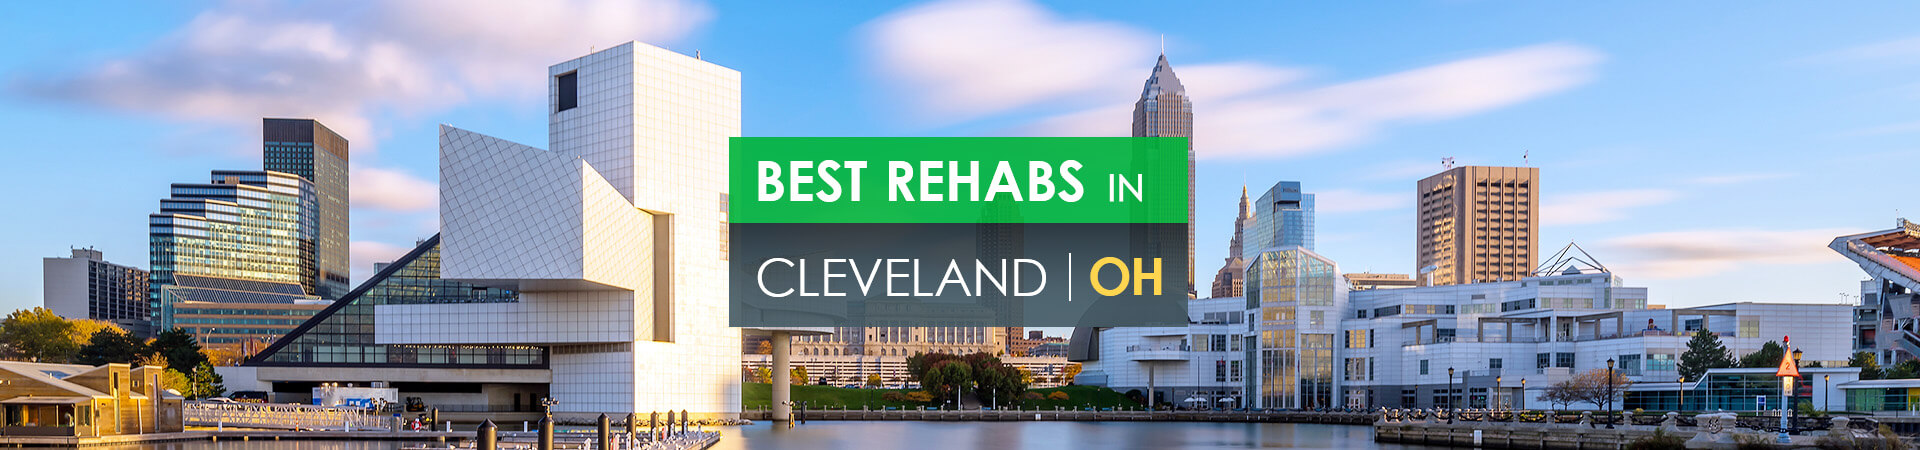 Best rehabs in Cleveland, OH